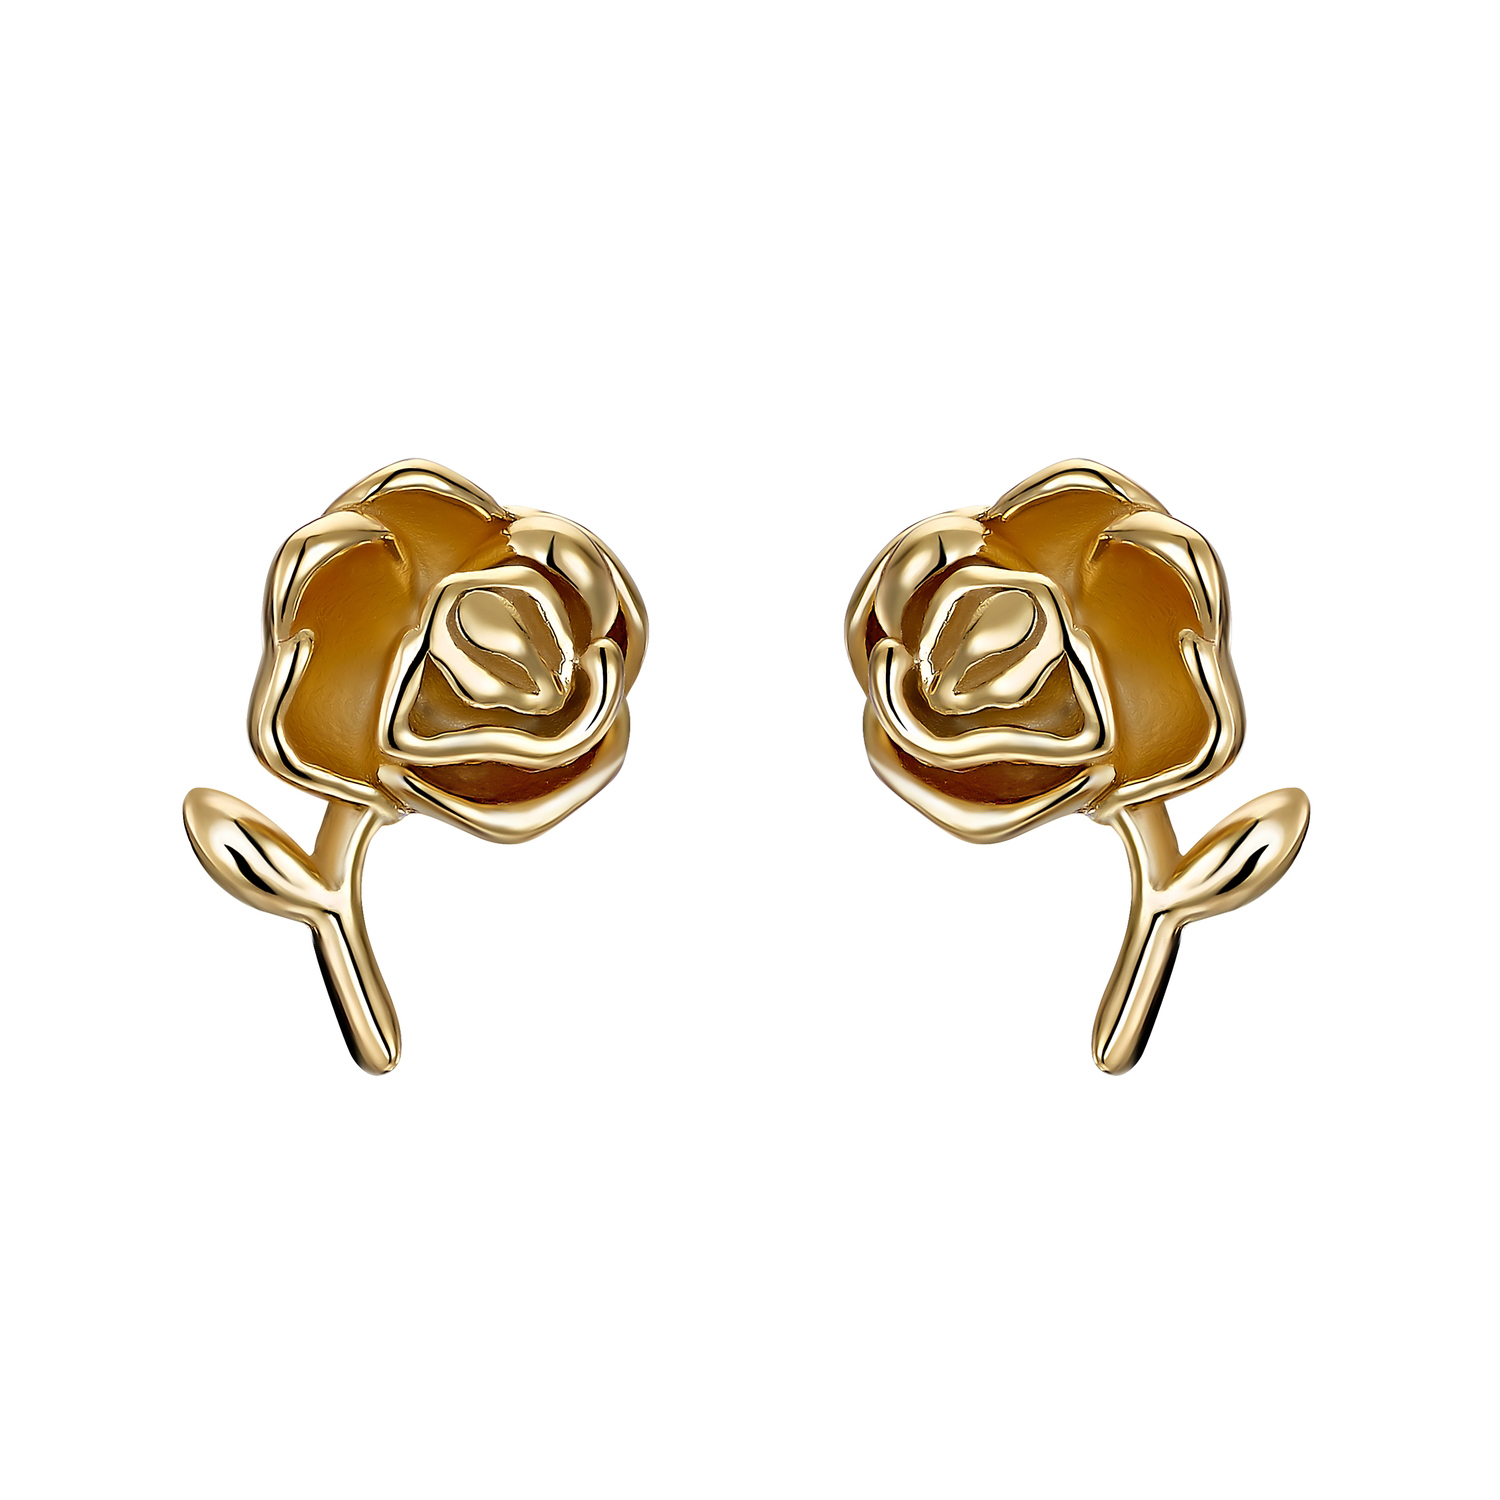 ROSE OHRSTECKER GOLD